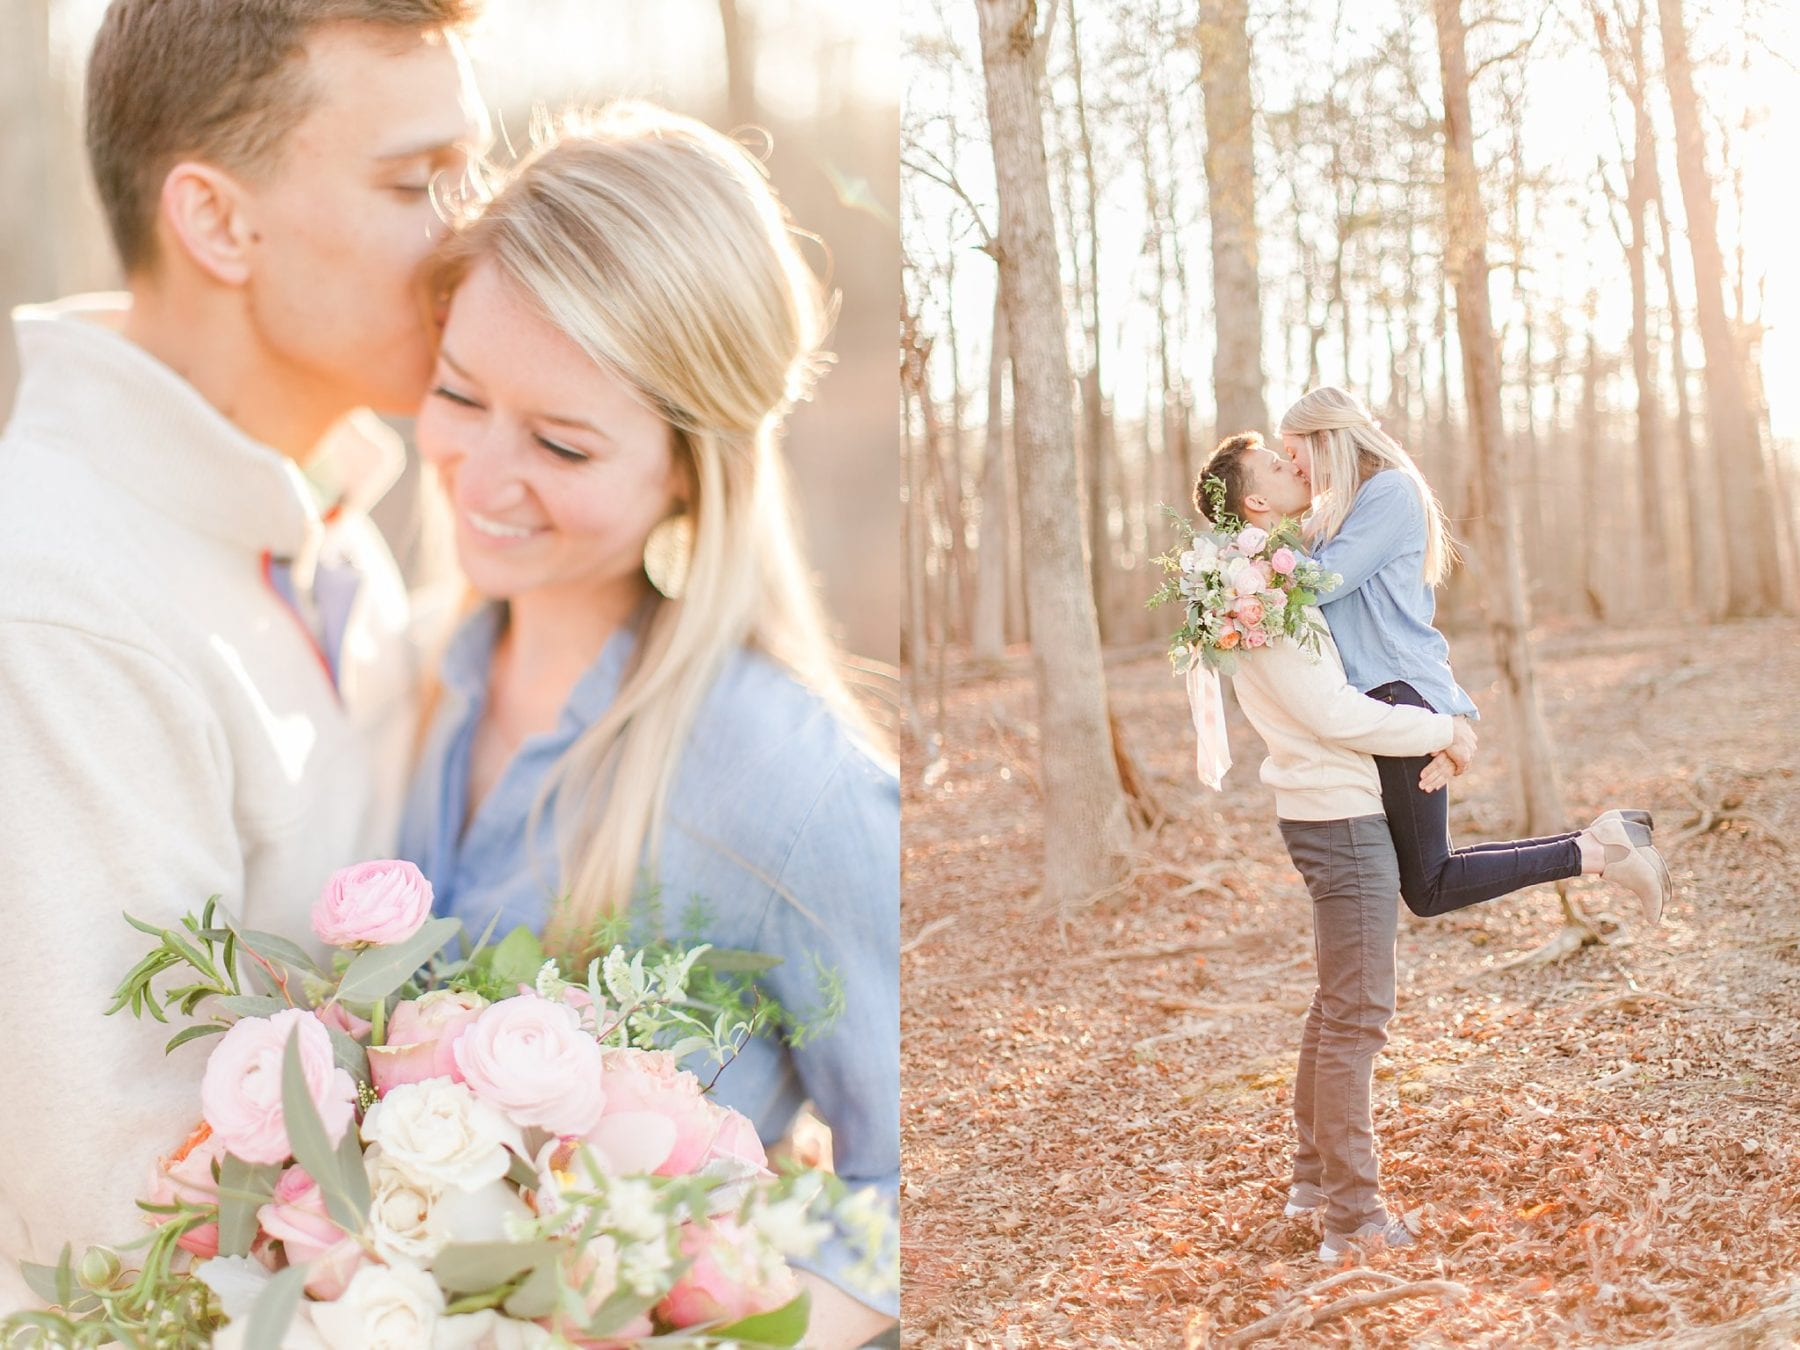 Manassas Battlefield Engagement Session Virginia Wedding Photographer Danielle & Charlie Megan Kelsey Photography-5476.jpg